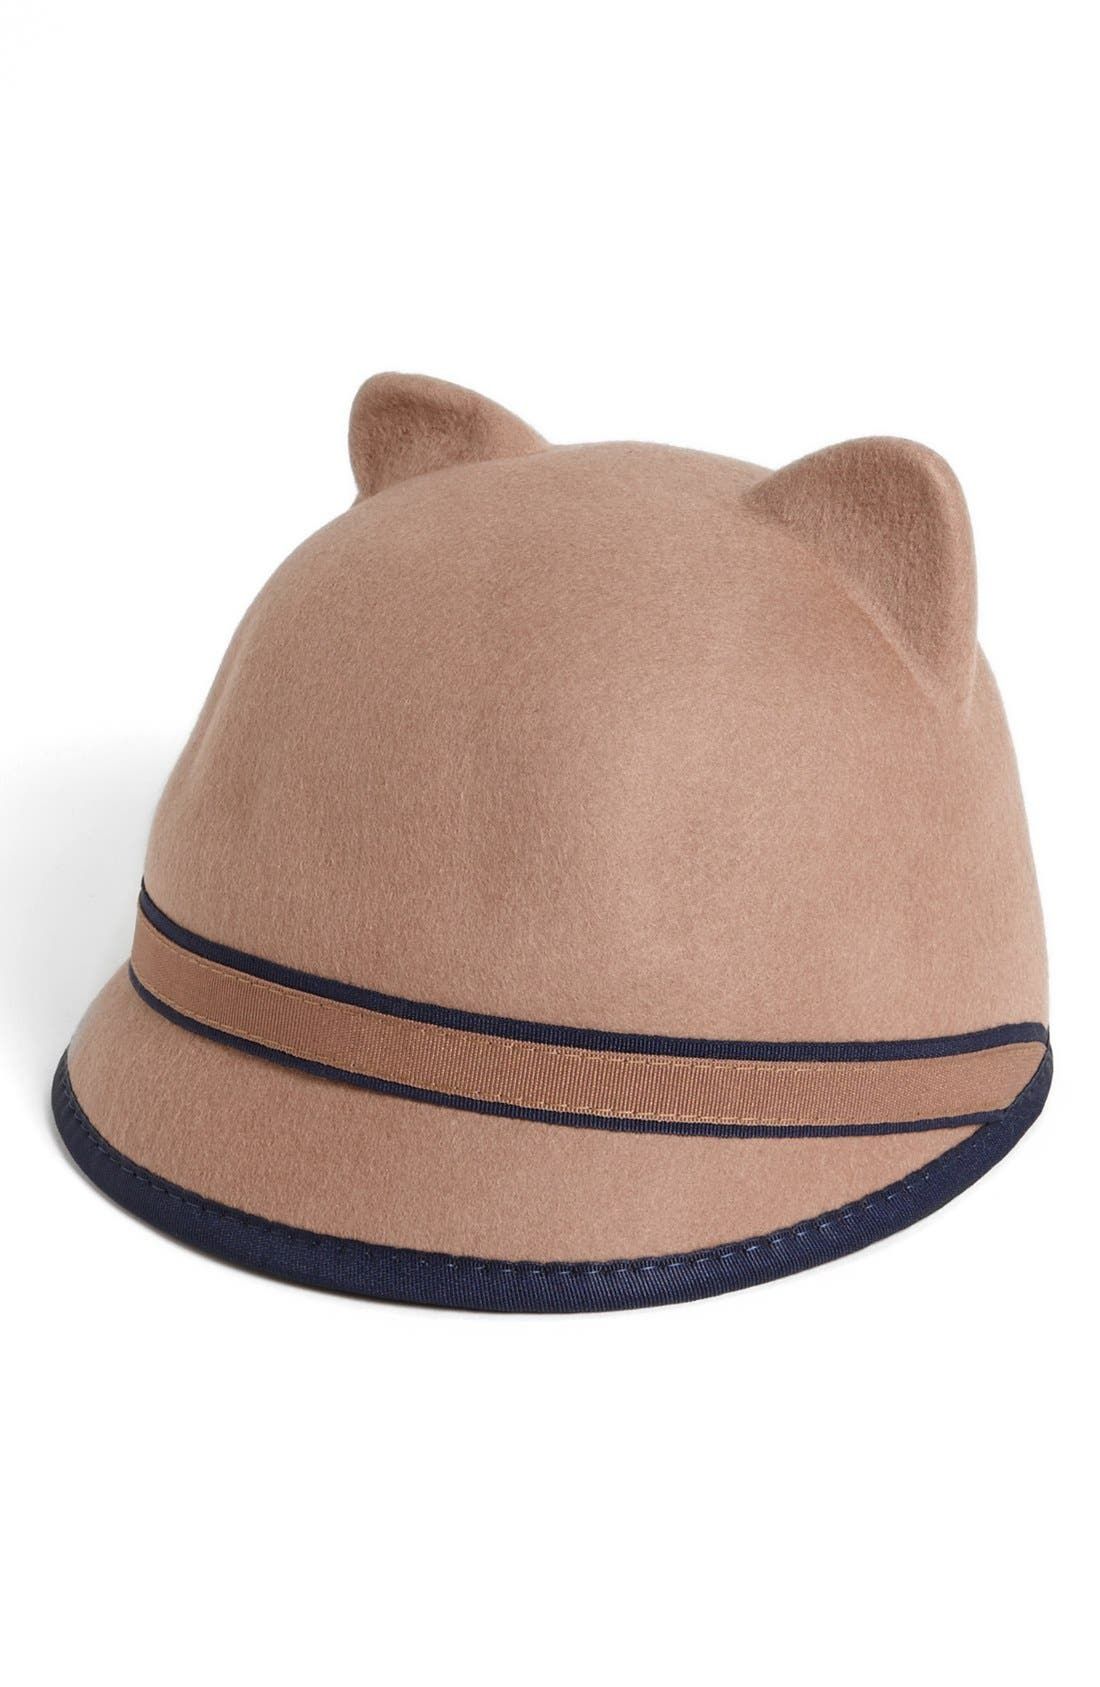 Alternate Image 1 Selected - BCBGMAXAZRIA Kitty Cat Baseball Cap